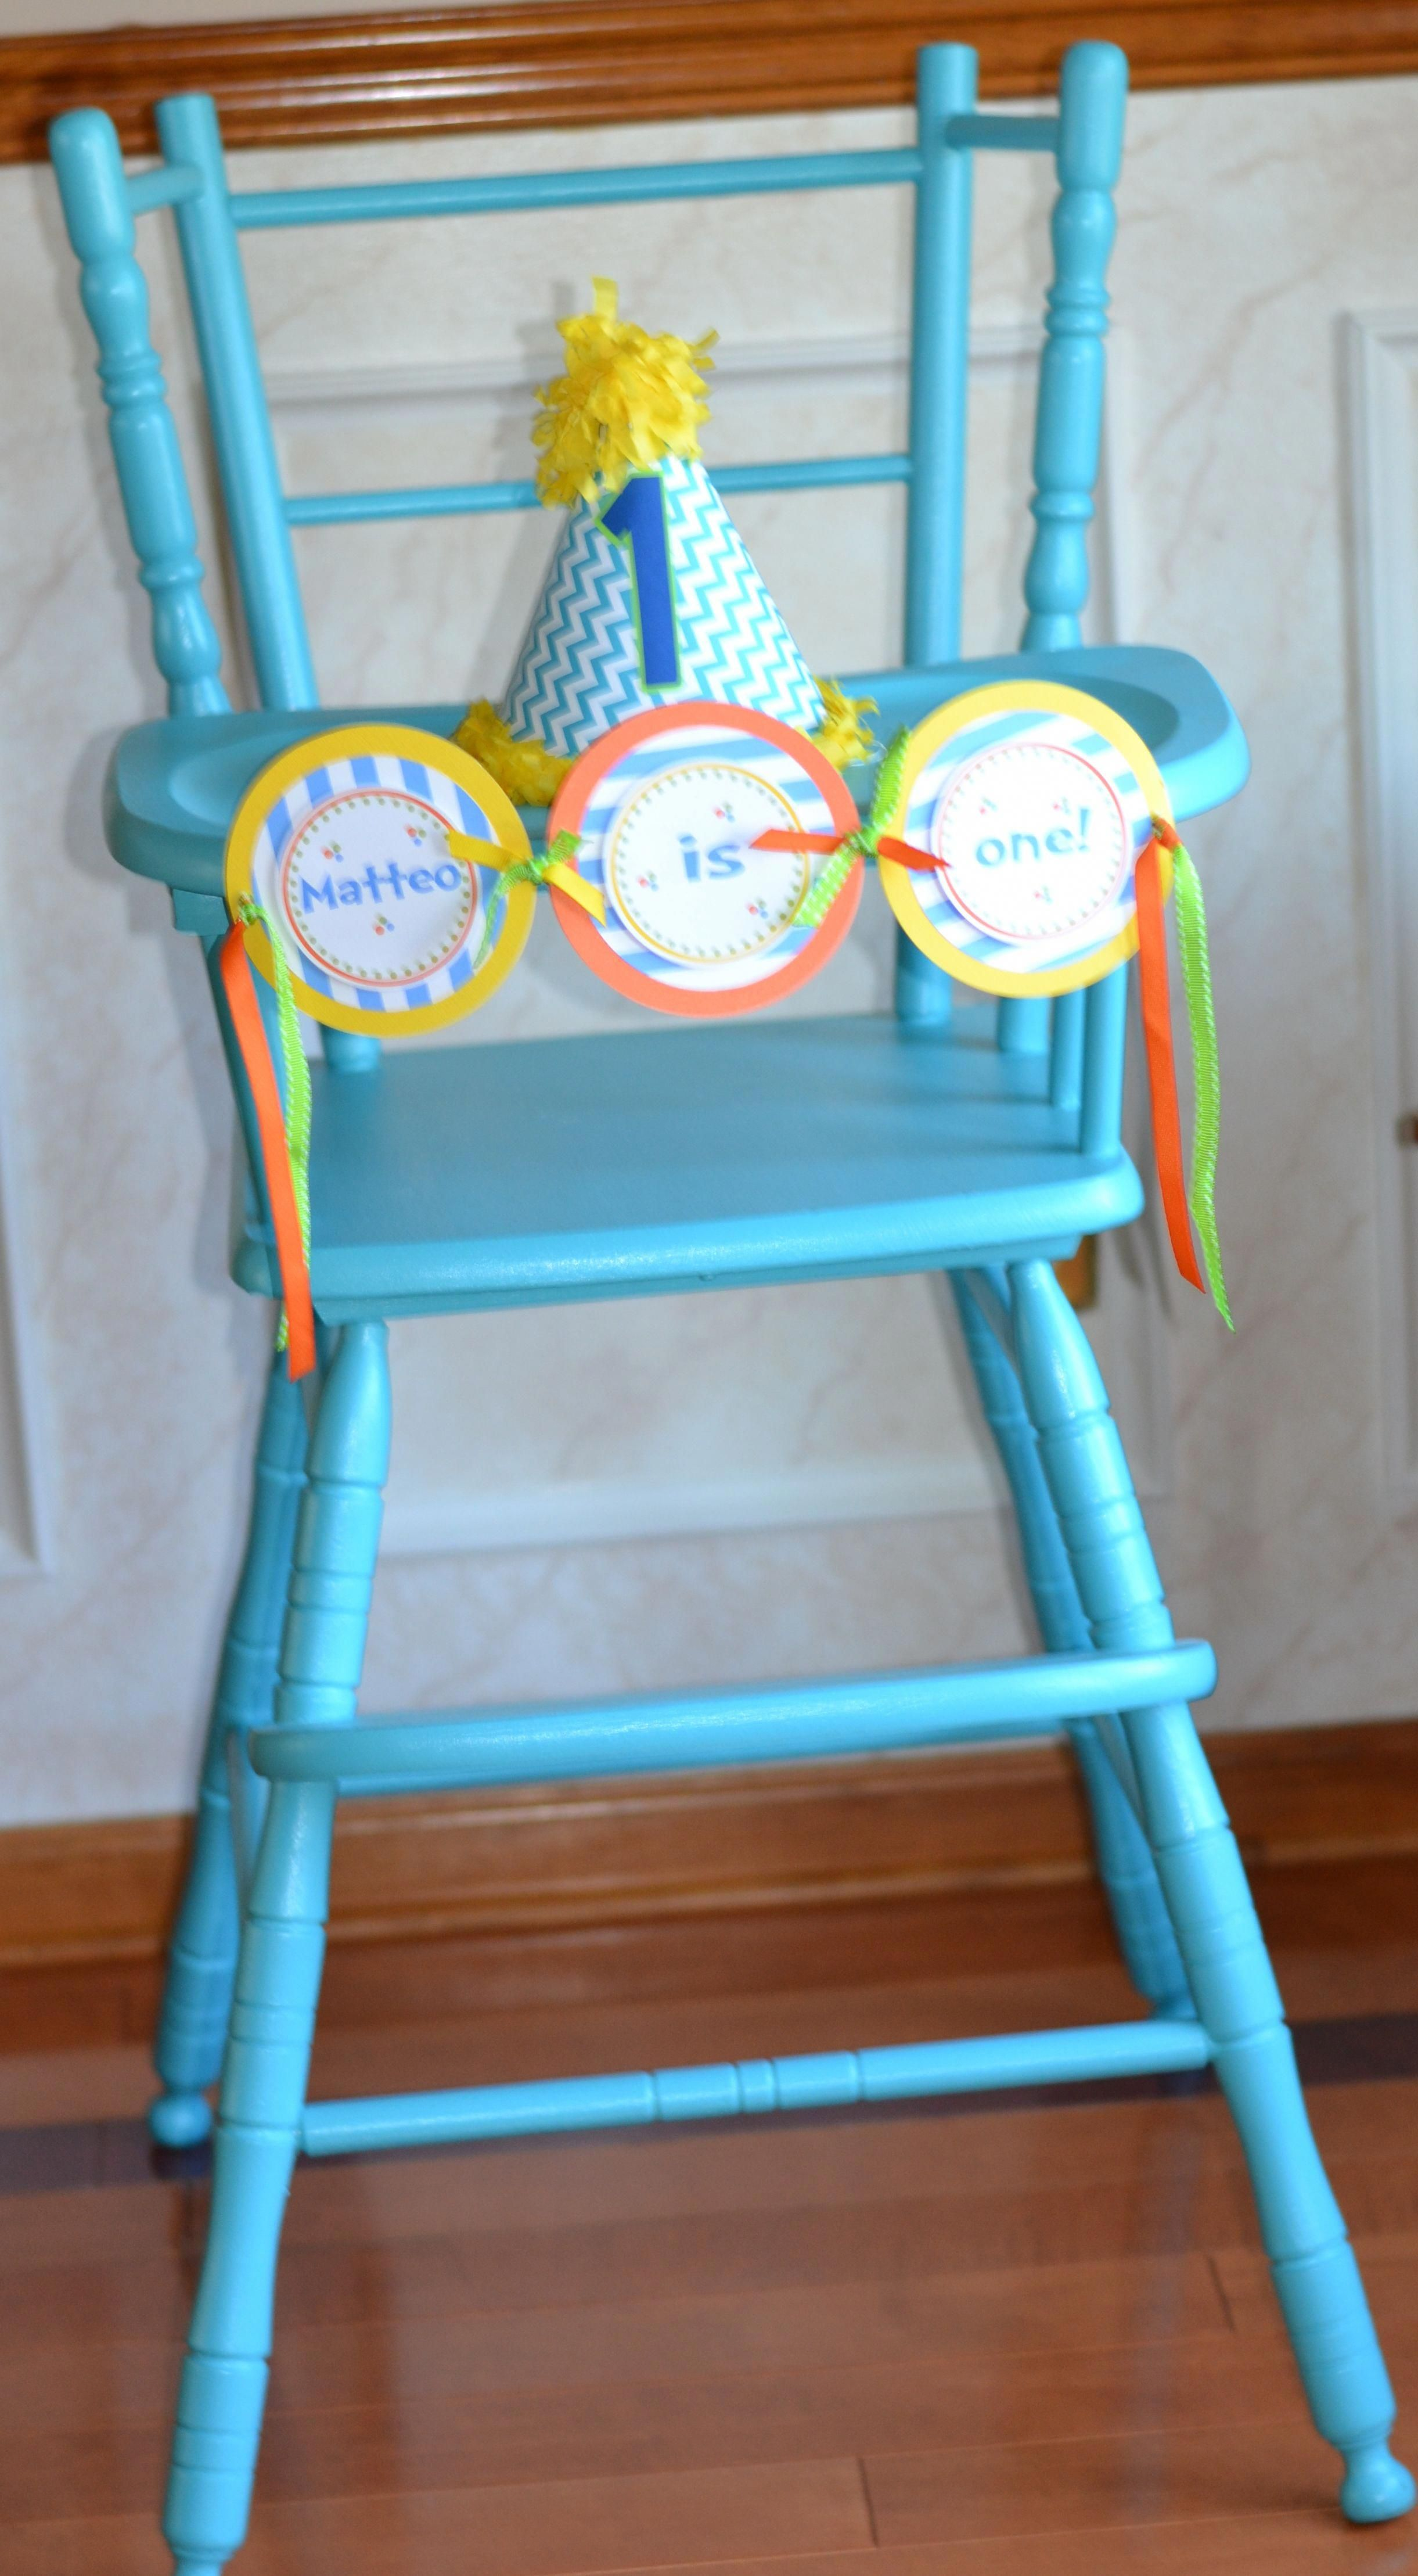 Oh The Places Youll Go Dr Seuss Birthday Party Theme Drseuss Ohtheplacesyoullgo Firstbirthday Partydecorations Birthdaypartyplaces